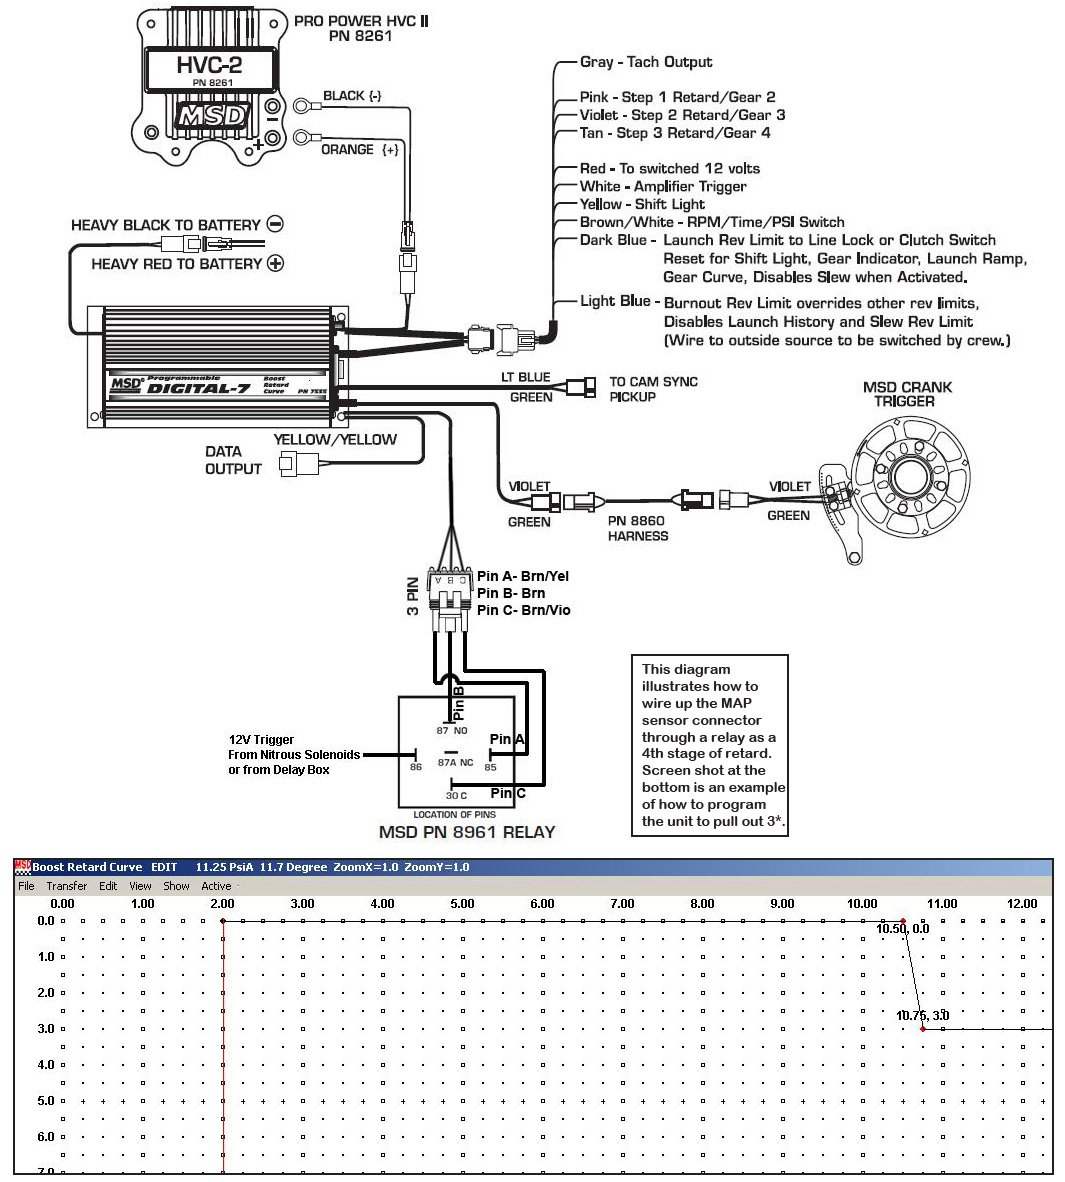 small resolution of 7320 msd ignition wiring diagram wiring diagram progresif msd 8360 wiring diagram 7320 msd ignition wiring diagram